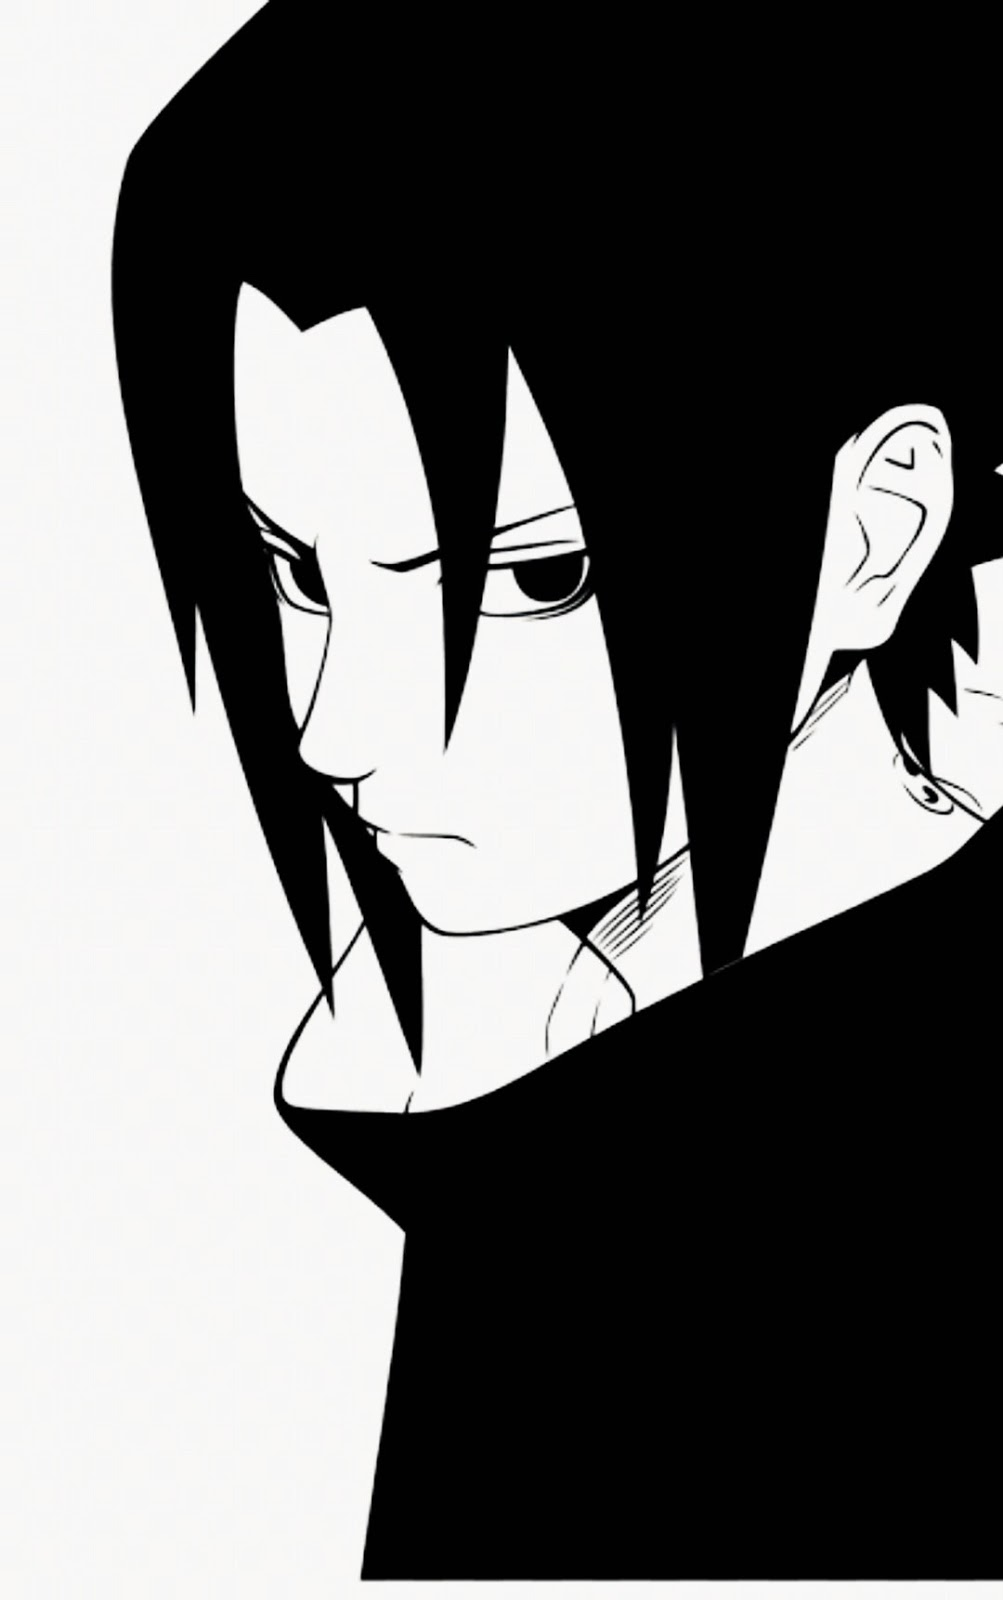 22. Download wallpaper uchiha sasuke vektor untuk android dan whatsApp chat